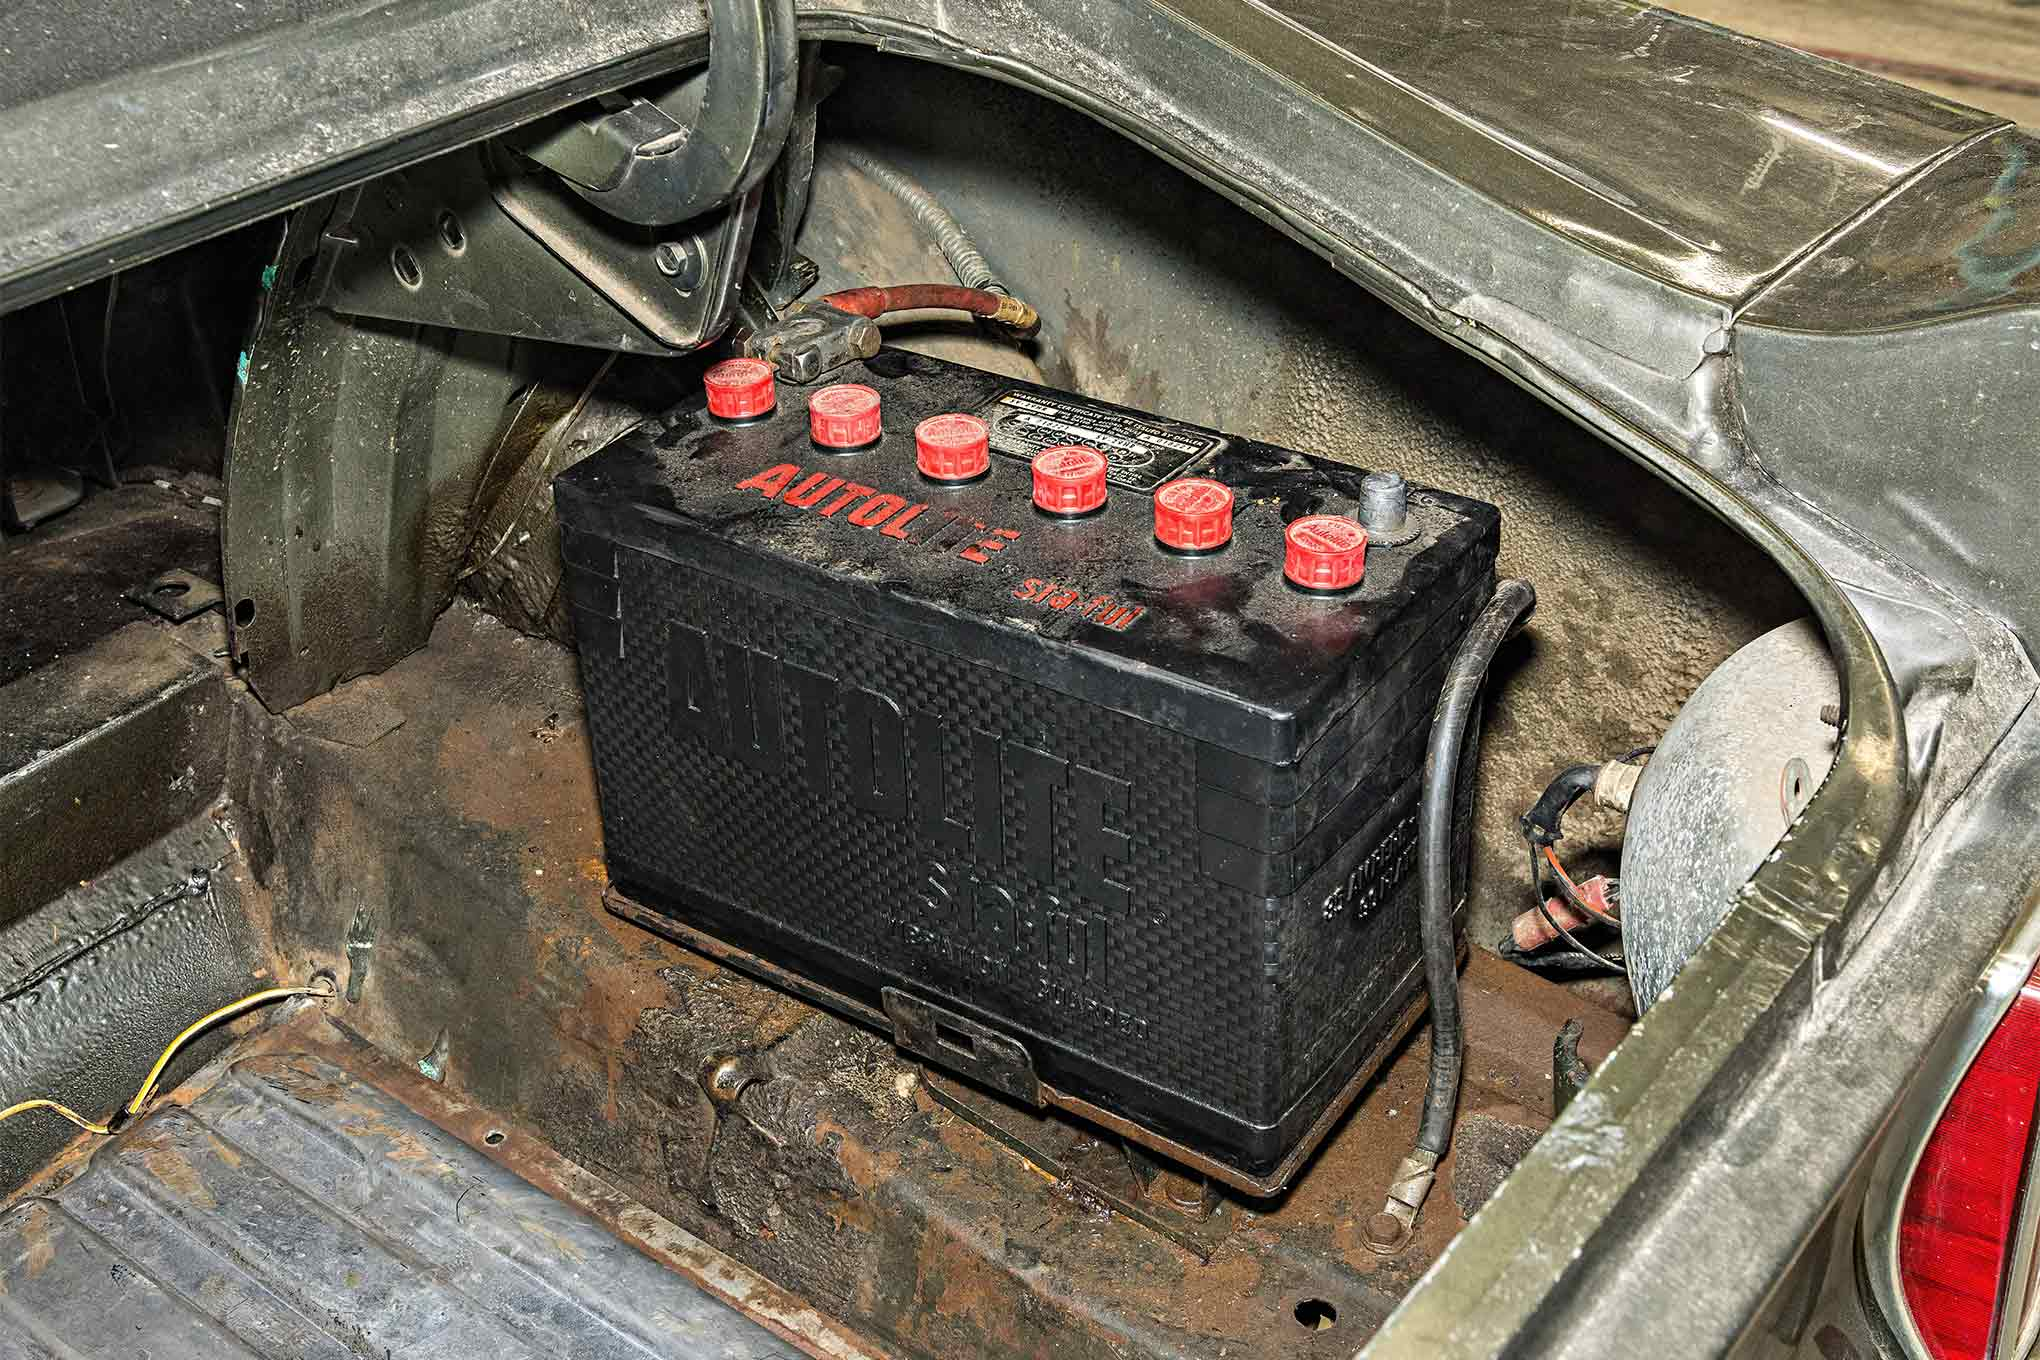 This is not the battery Kar Kraft installed, but it is from the period. Could it be just the second one ever installed in this car?